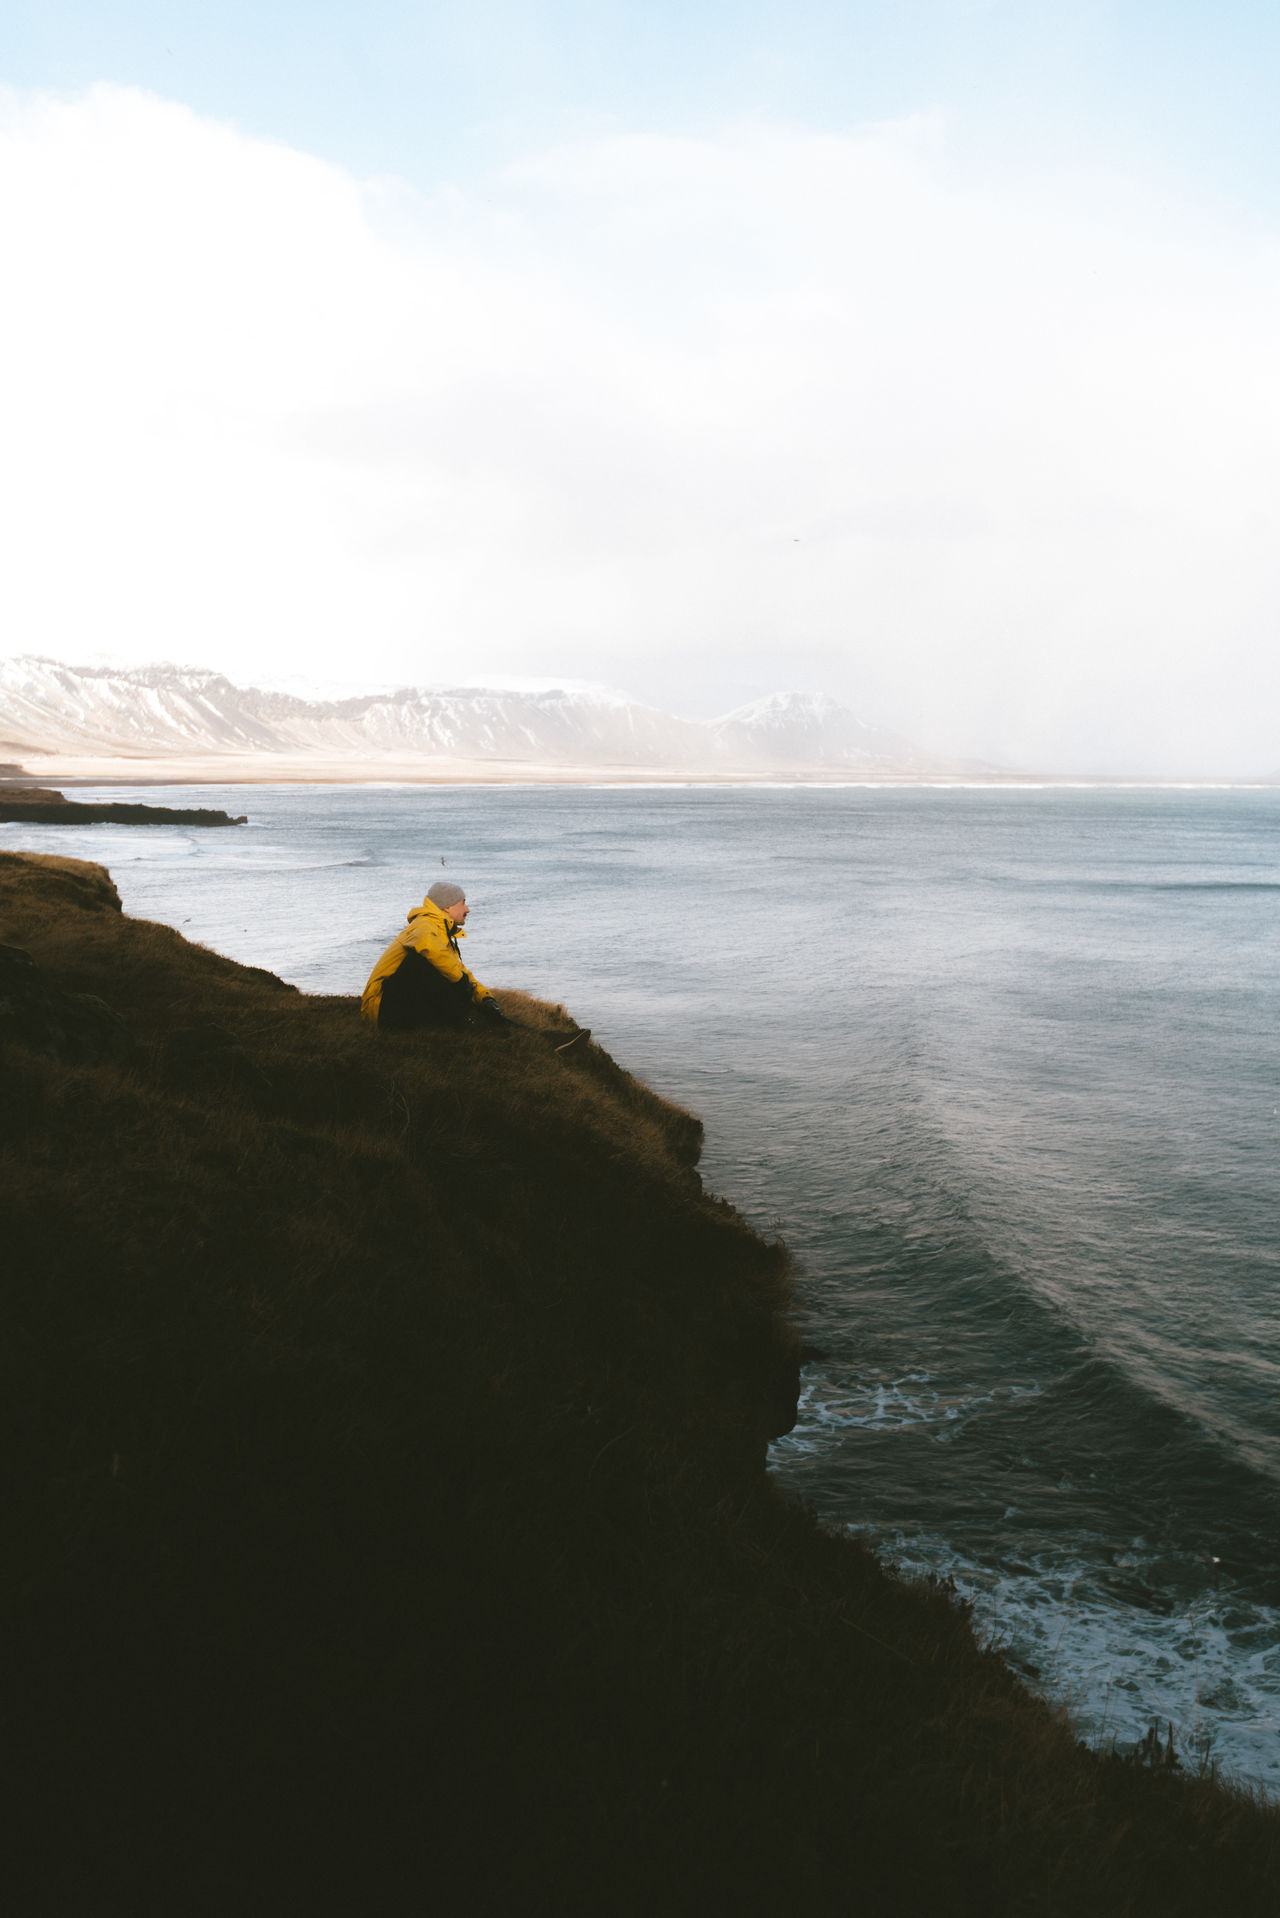 Iceland coast landscape with rough sea Beach Beauty In Nature Day Horizon Over Water Landscape Nature One Person Outdoors People Real People Scenics Sea Sky Tranquil Scene Tranquility Vacations Water Wave Live For The Story